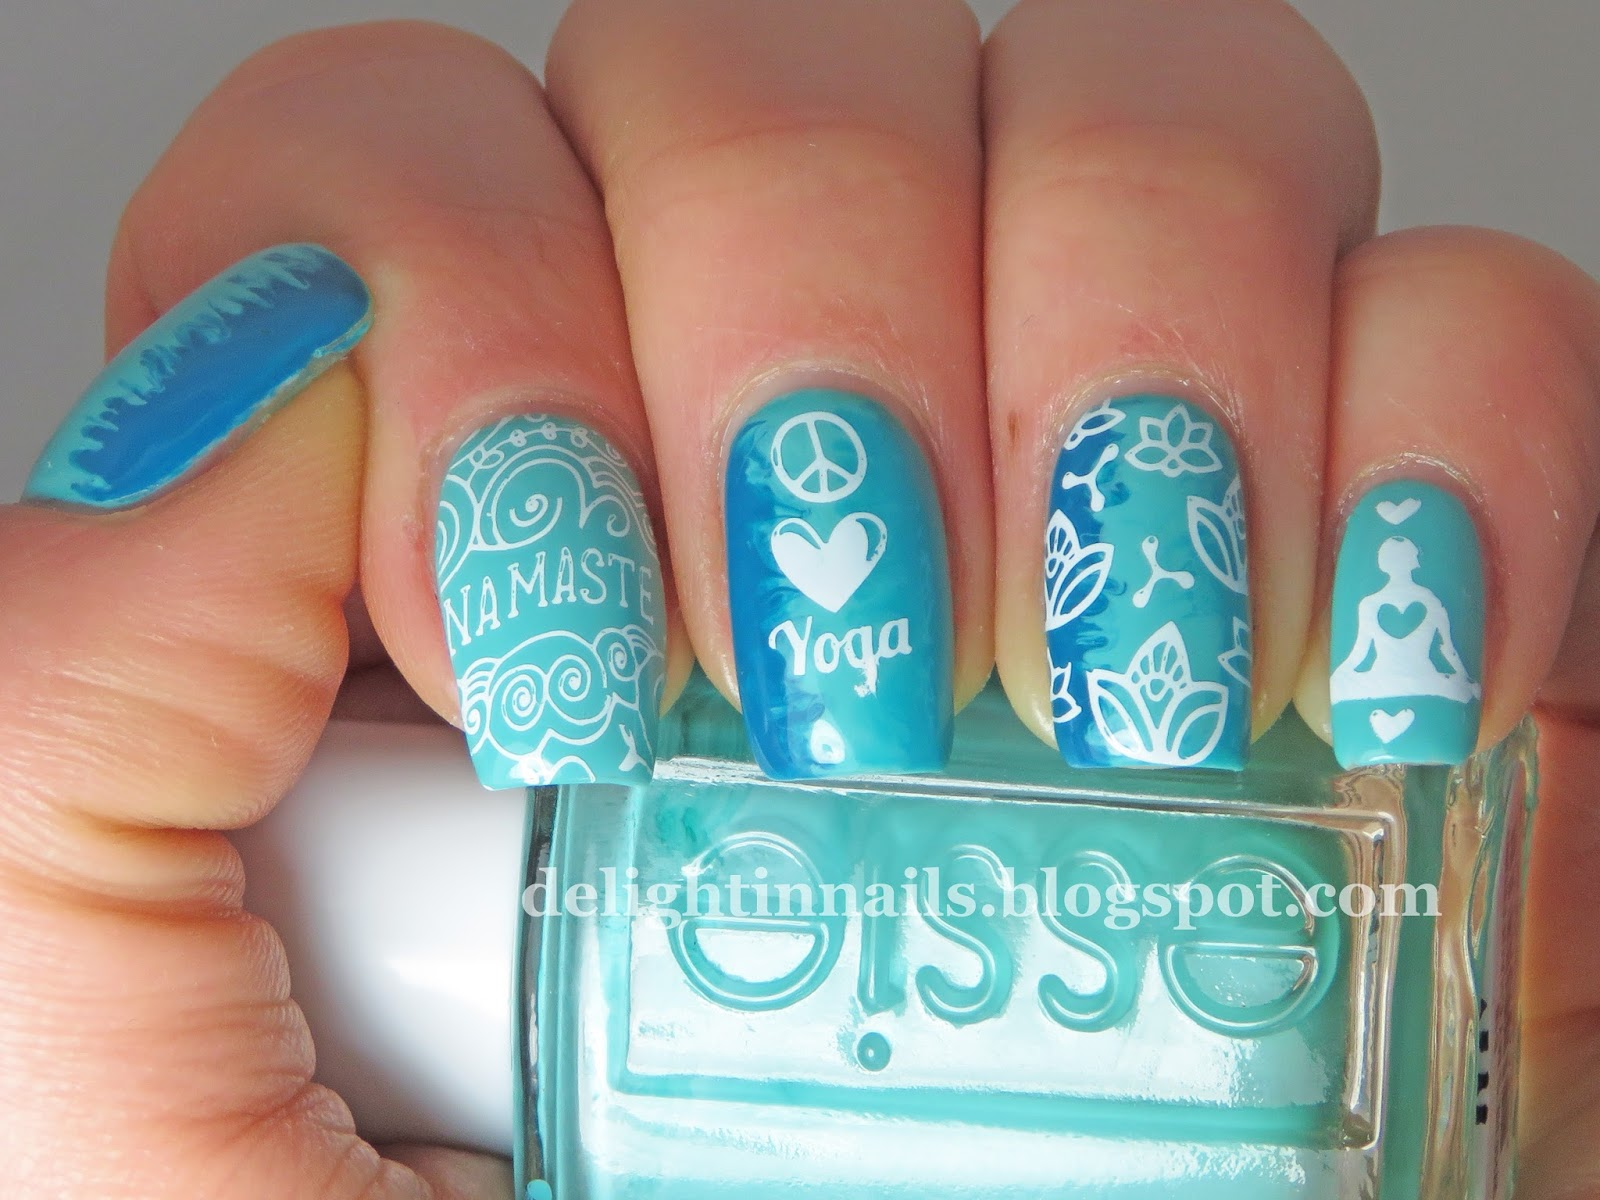 Delight In Nails 40 Great Nail Art Ideas Aqua Or Turquoise